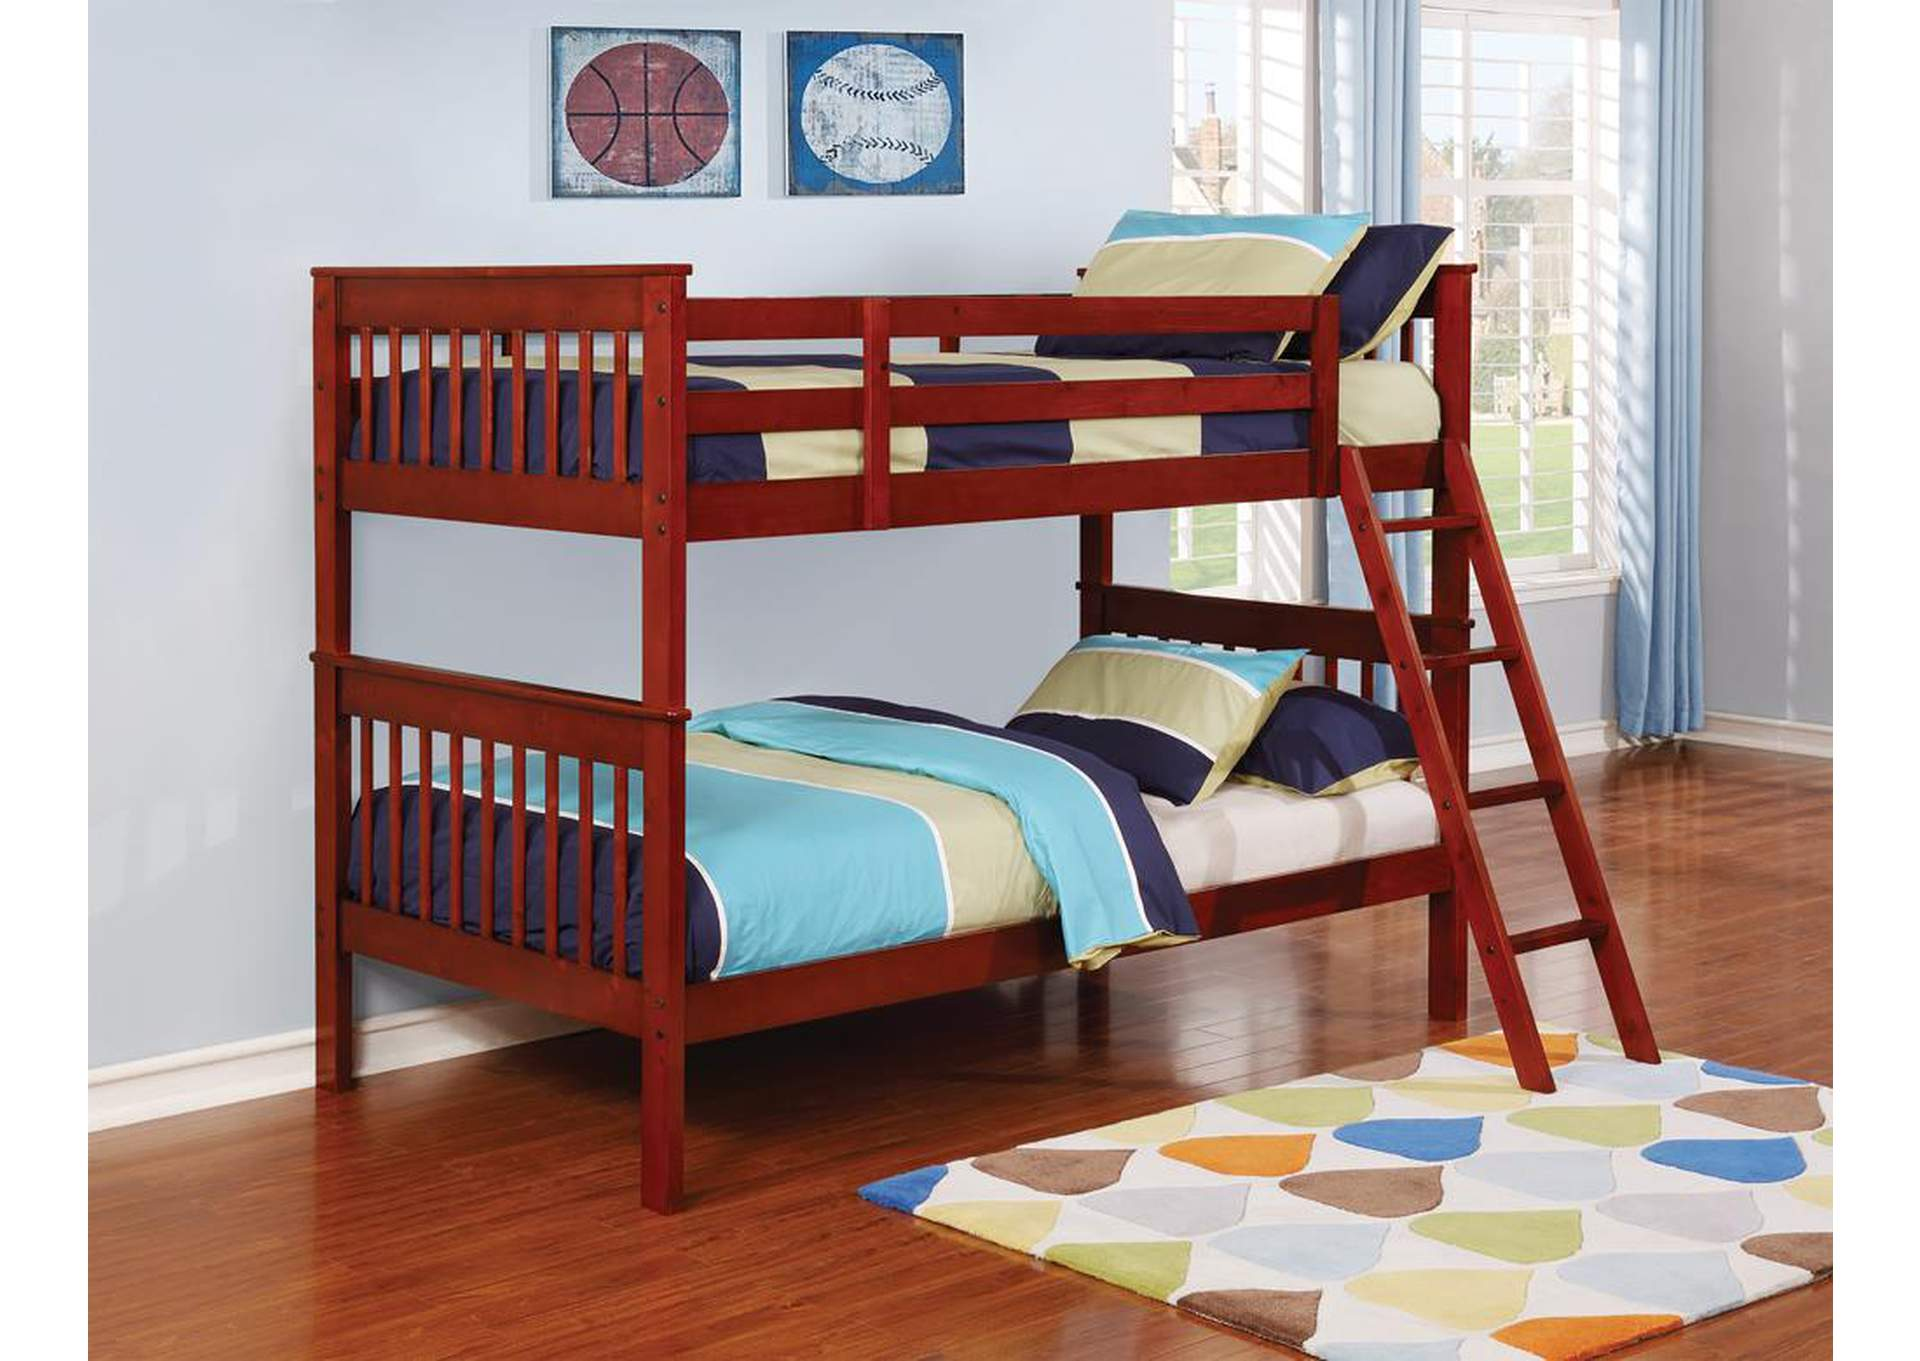 Charmant Furniture House   Dover, NJ Twin/Twin Bunk Bed